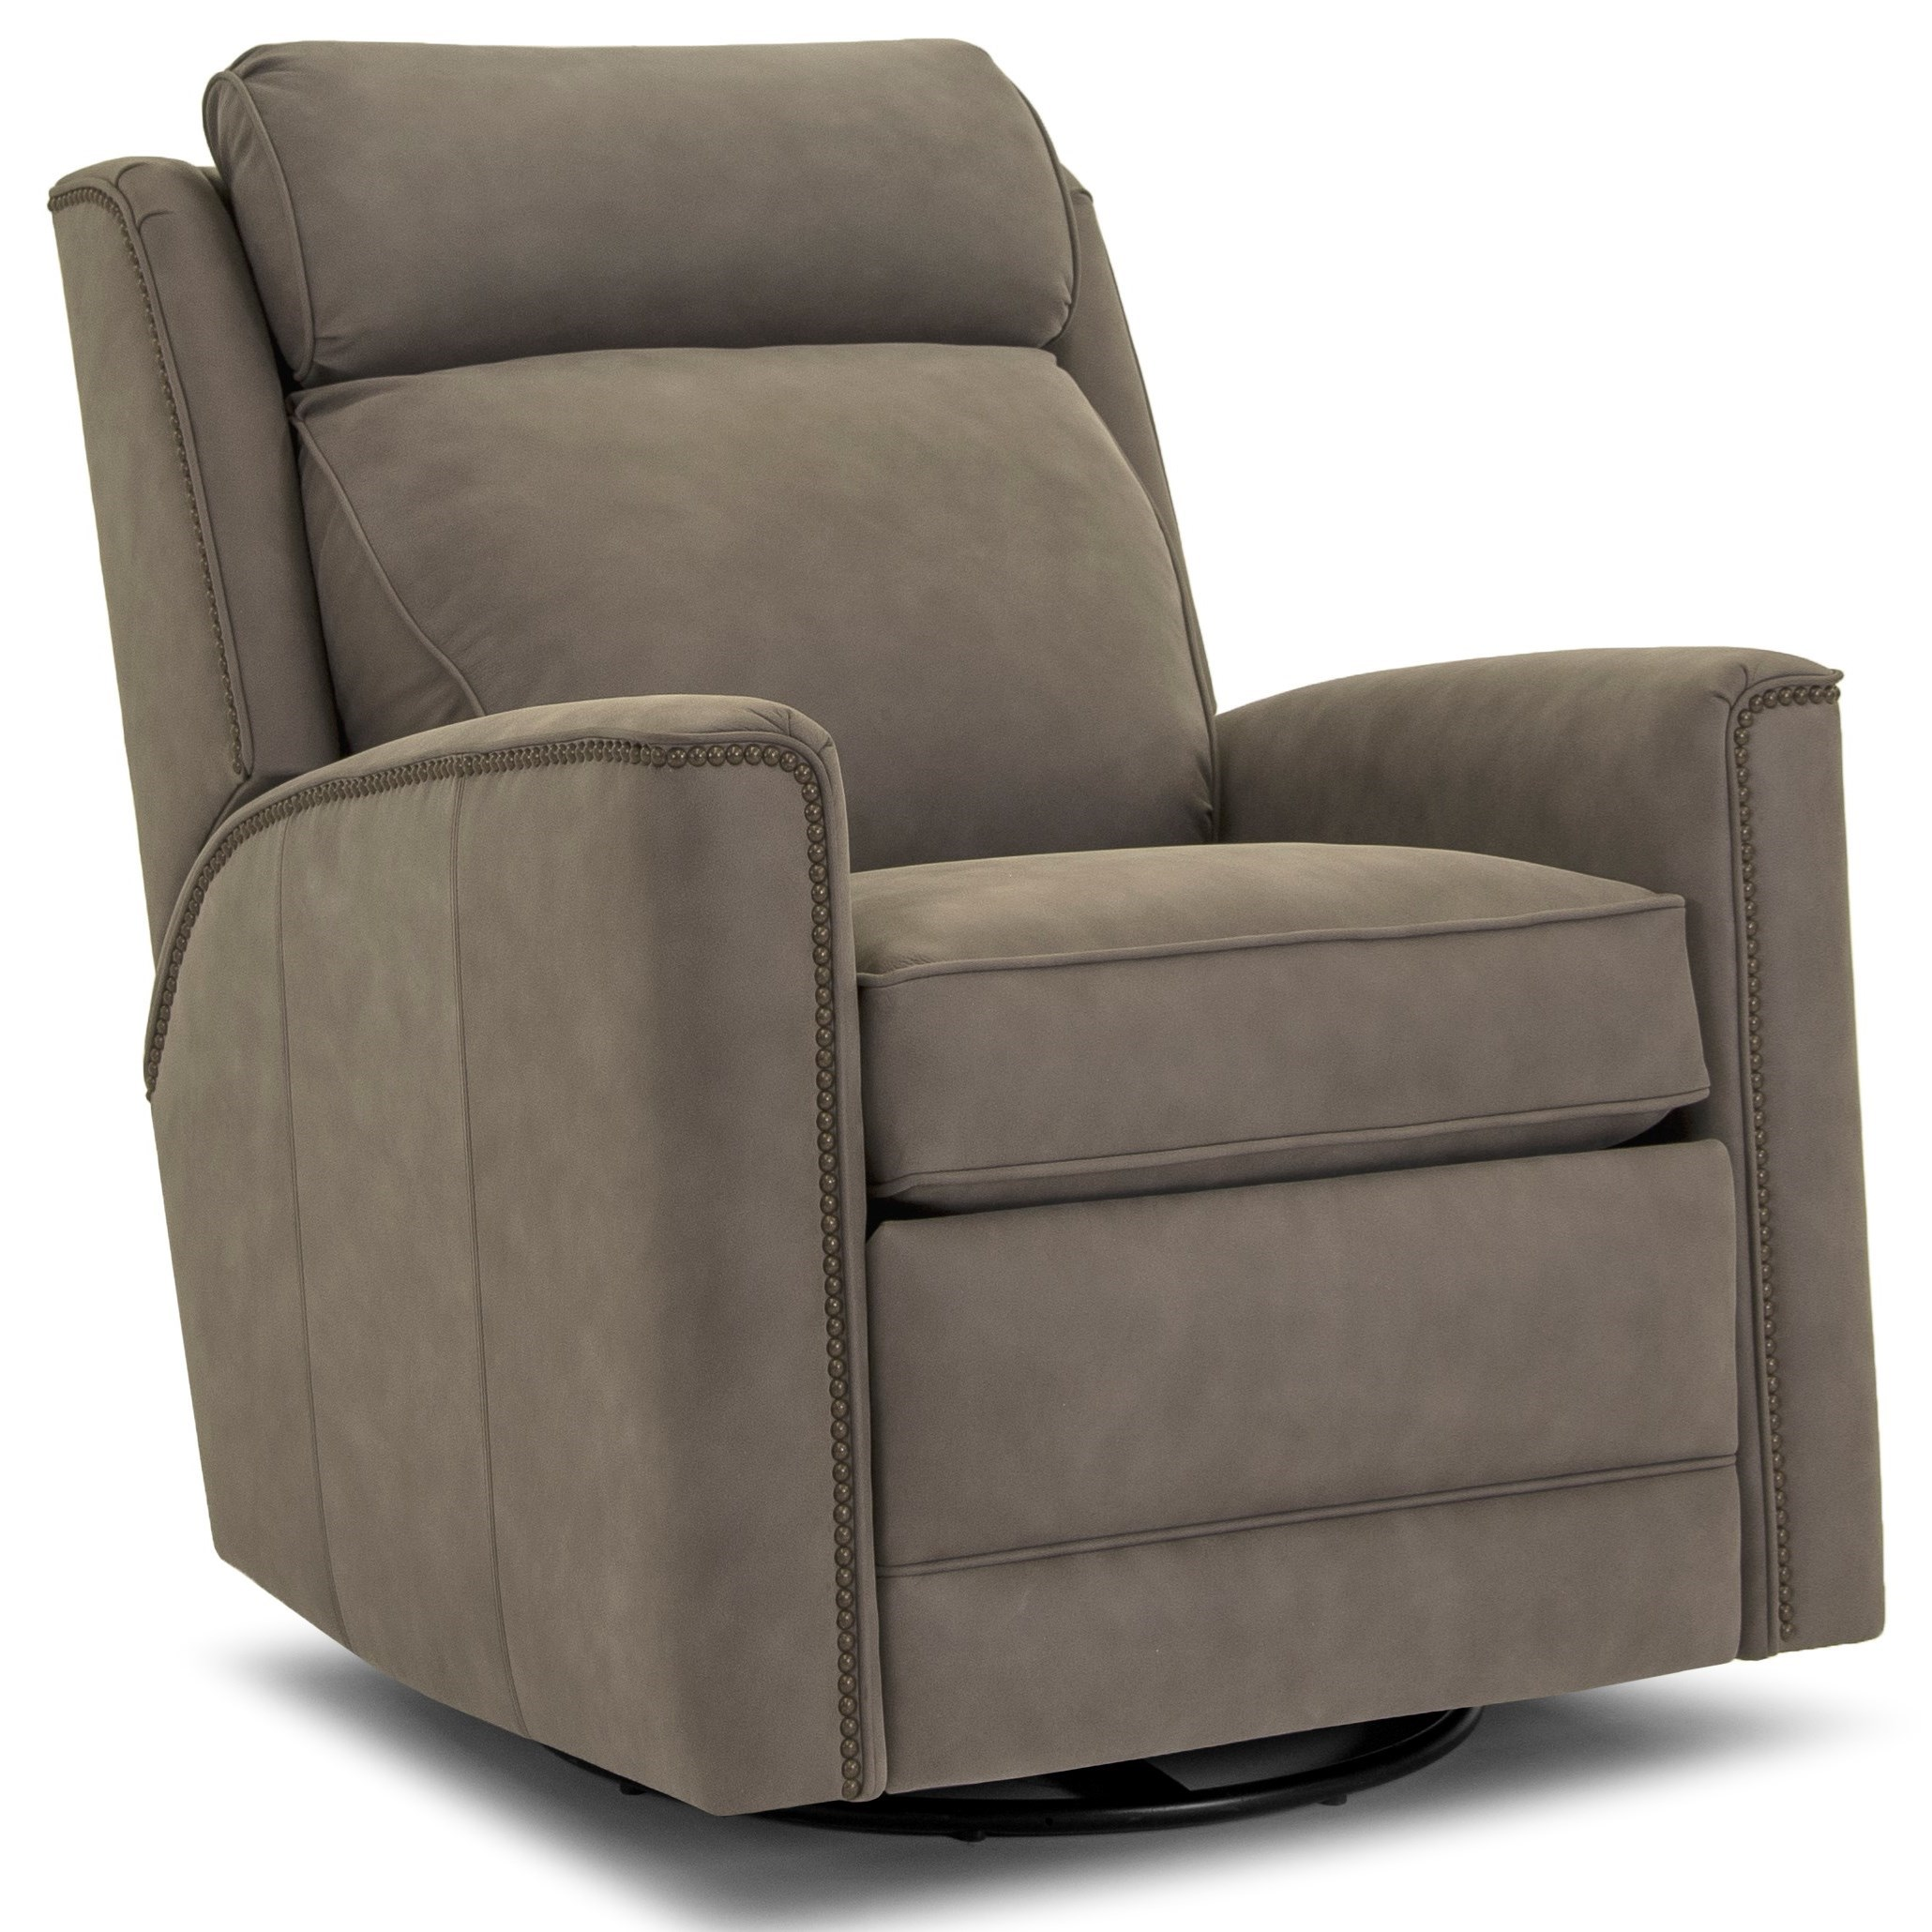 736 Power Swivel Glider Recliner by Smith Brothers at Pilgrim Furniture City